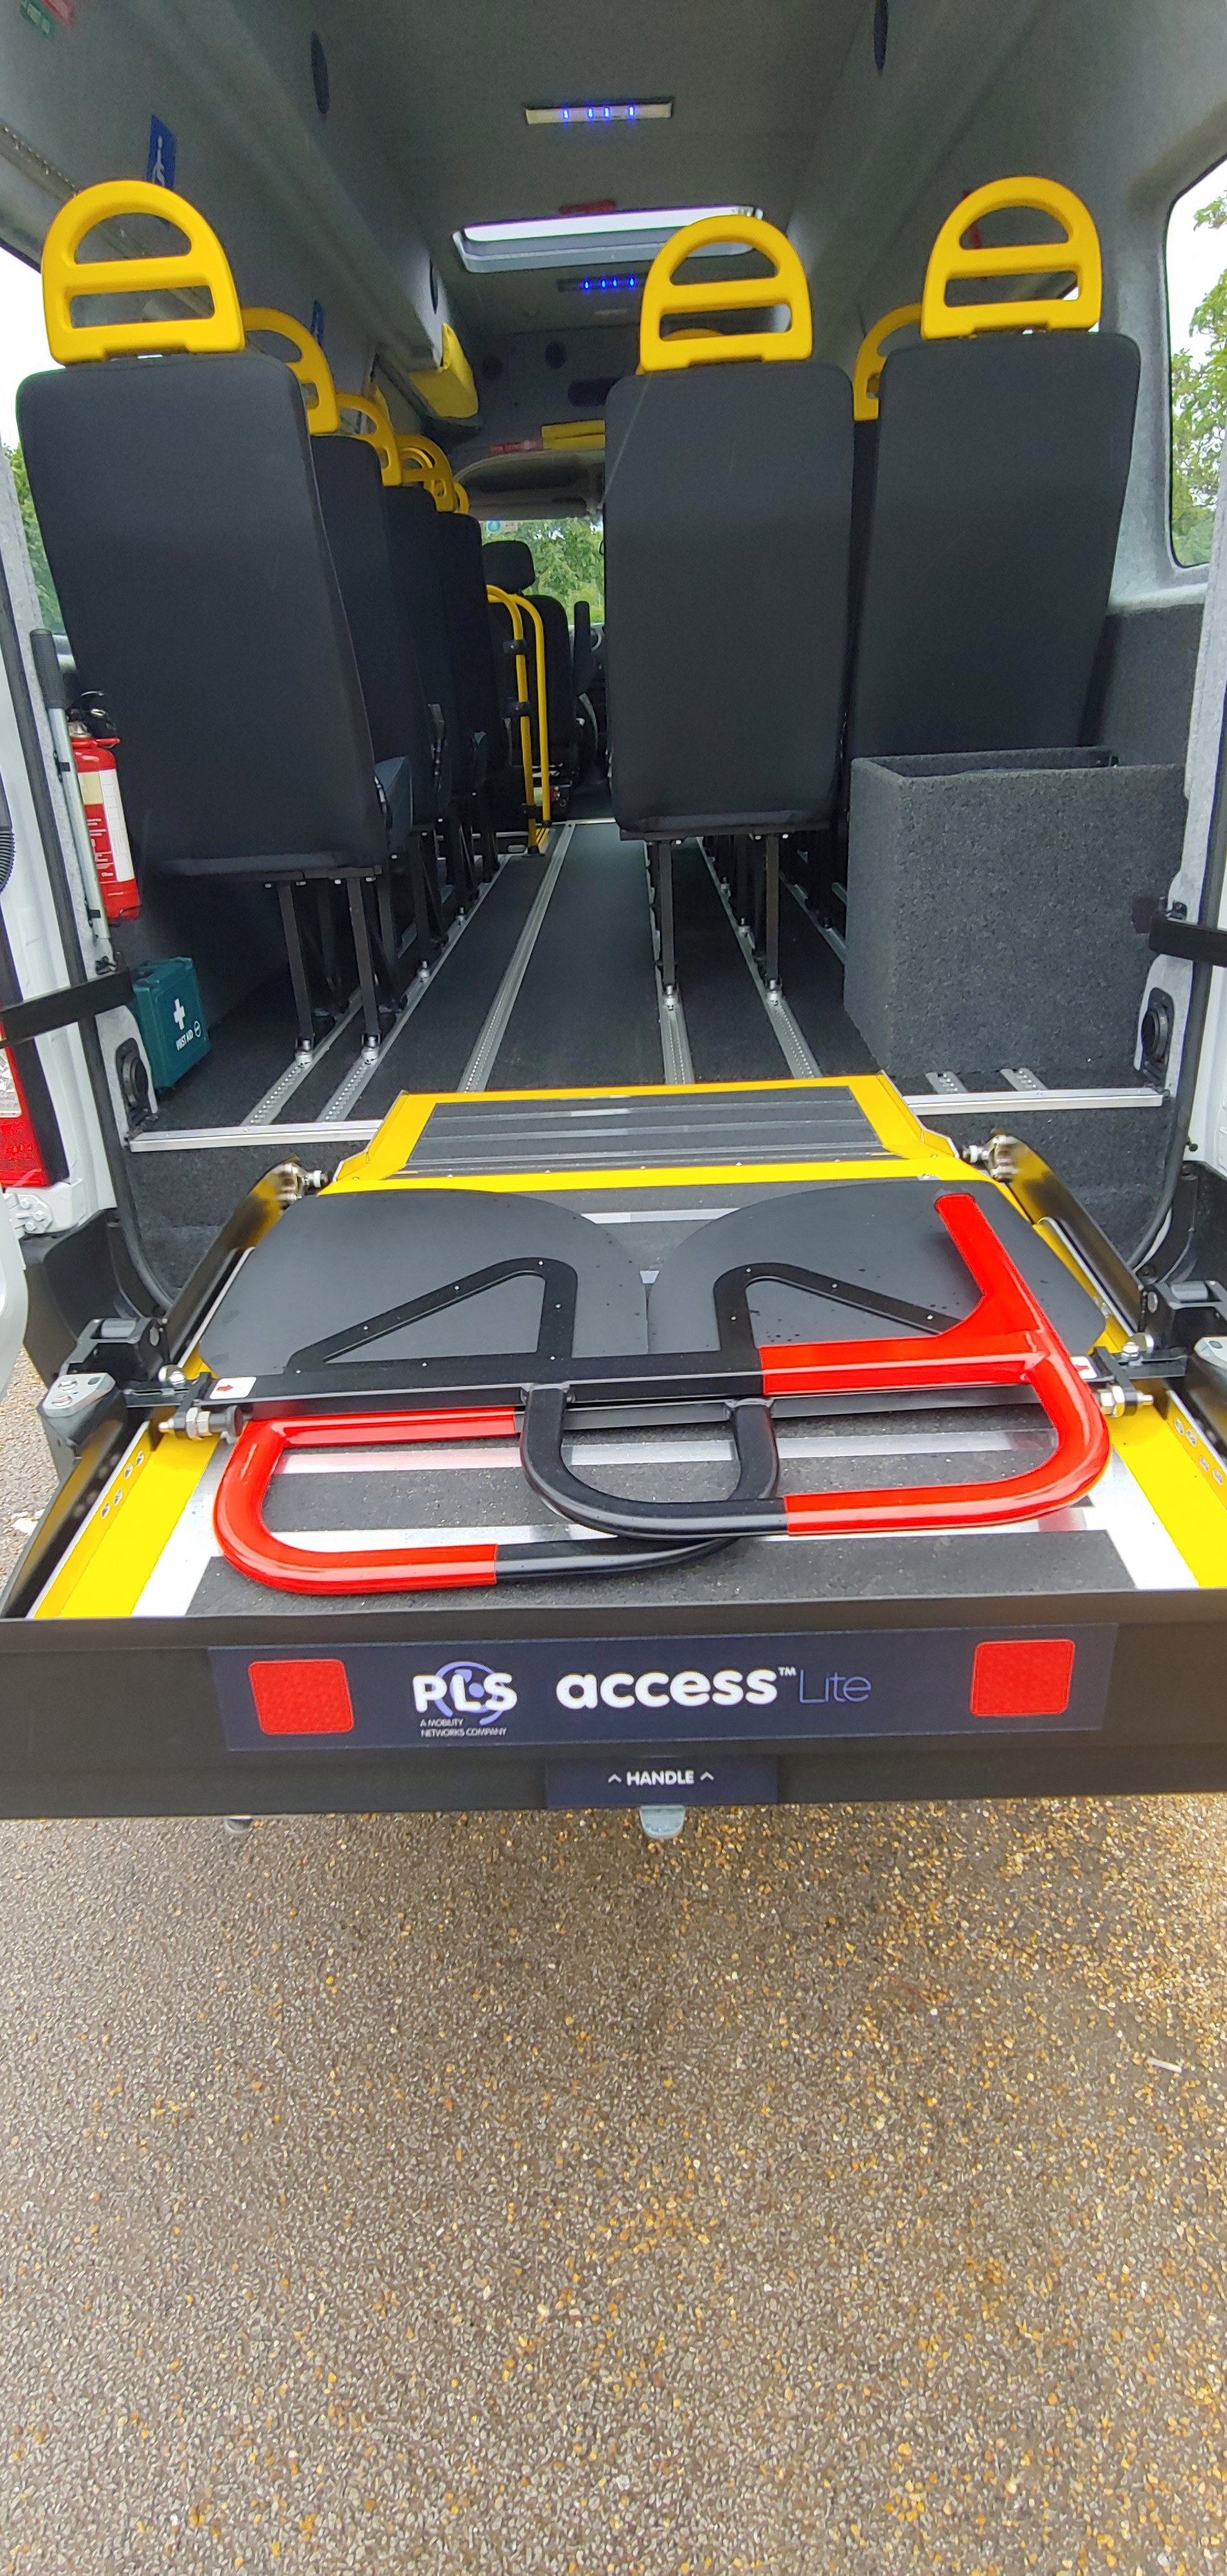 Underfloor Tail lift